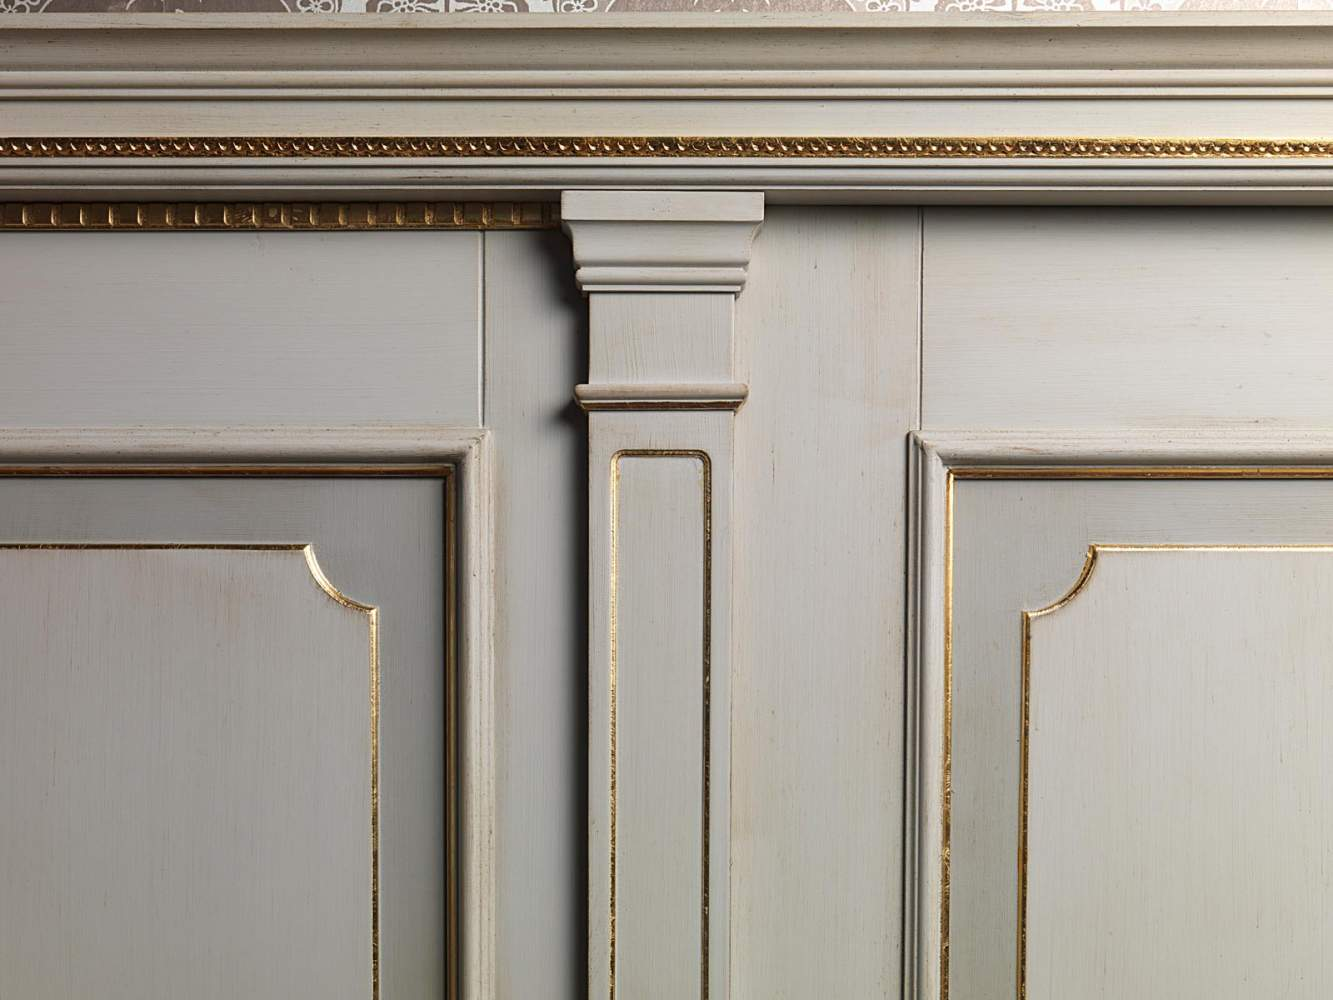 Boiserie white and gold, detail